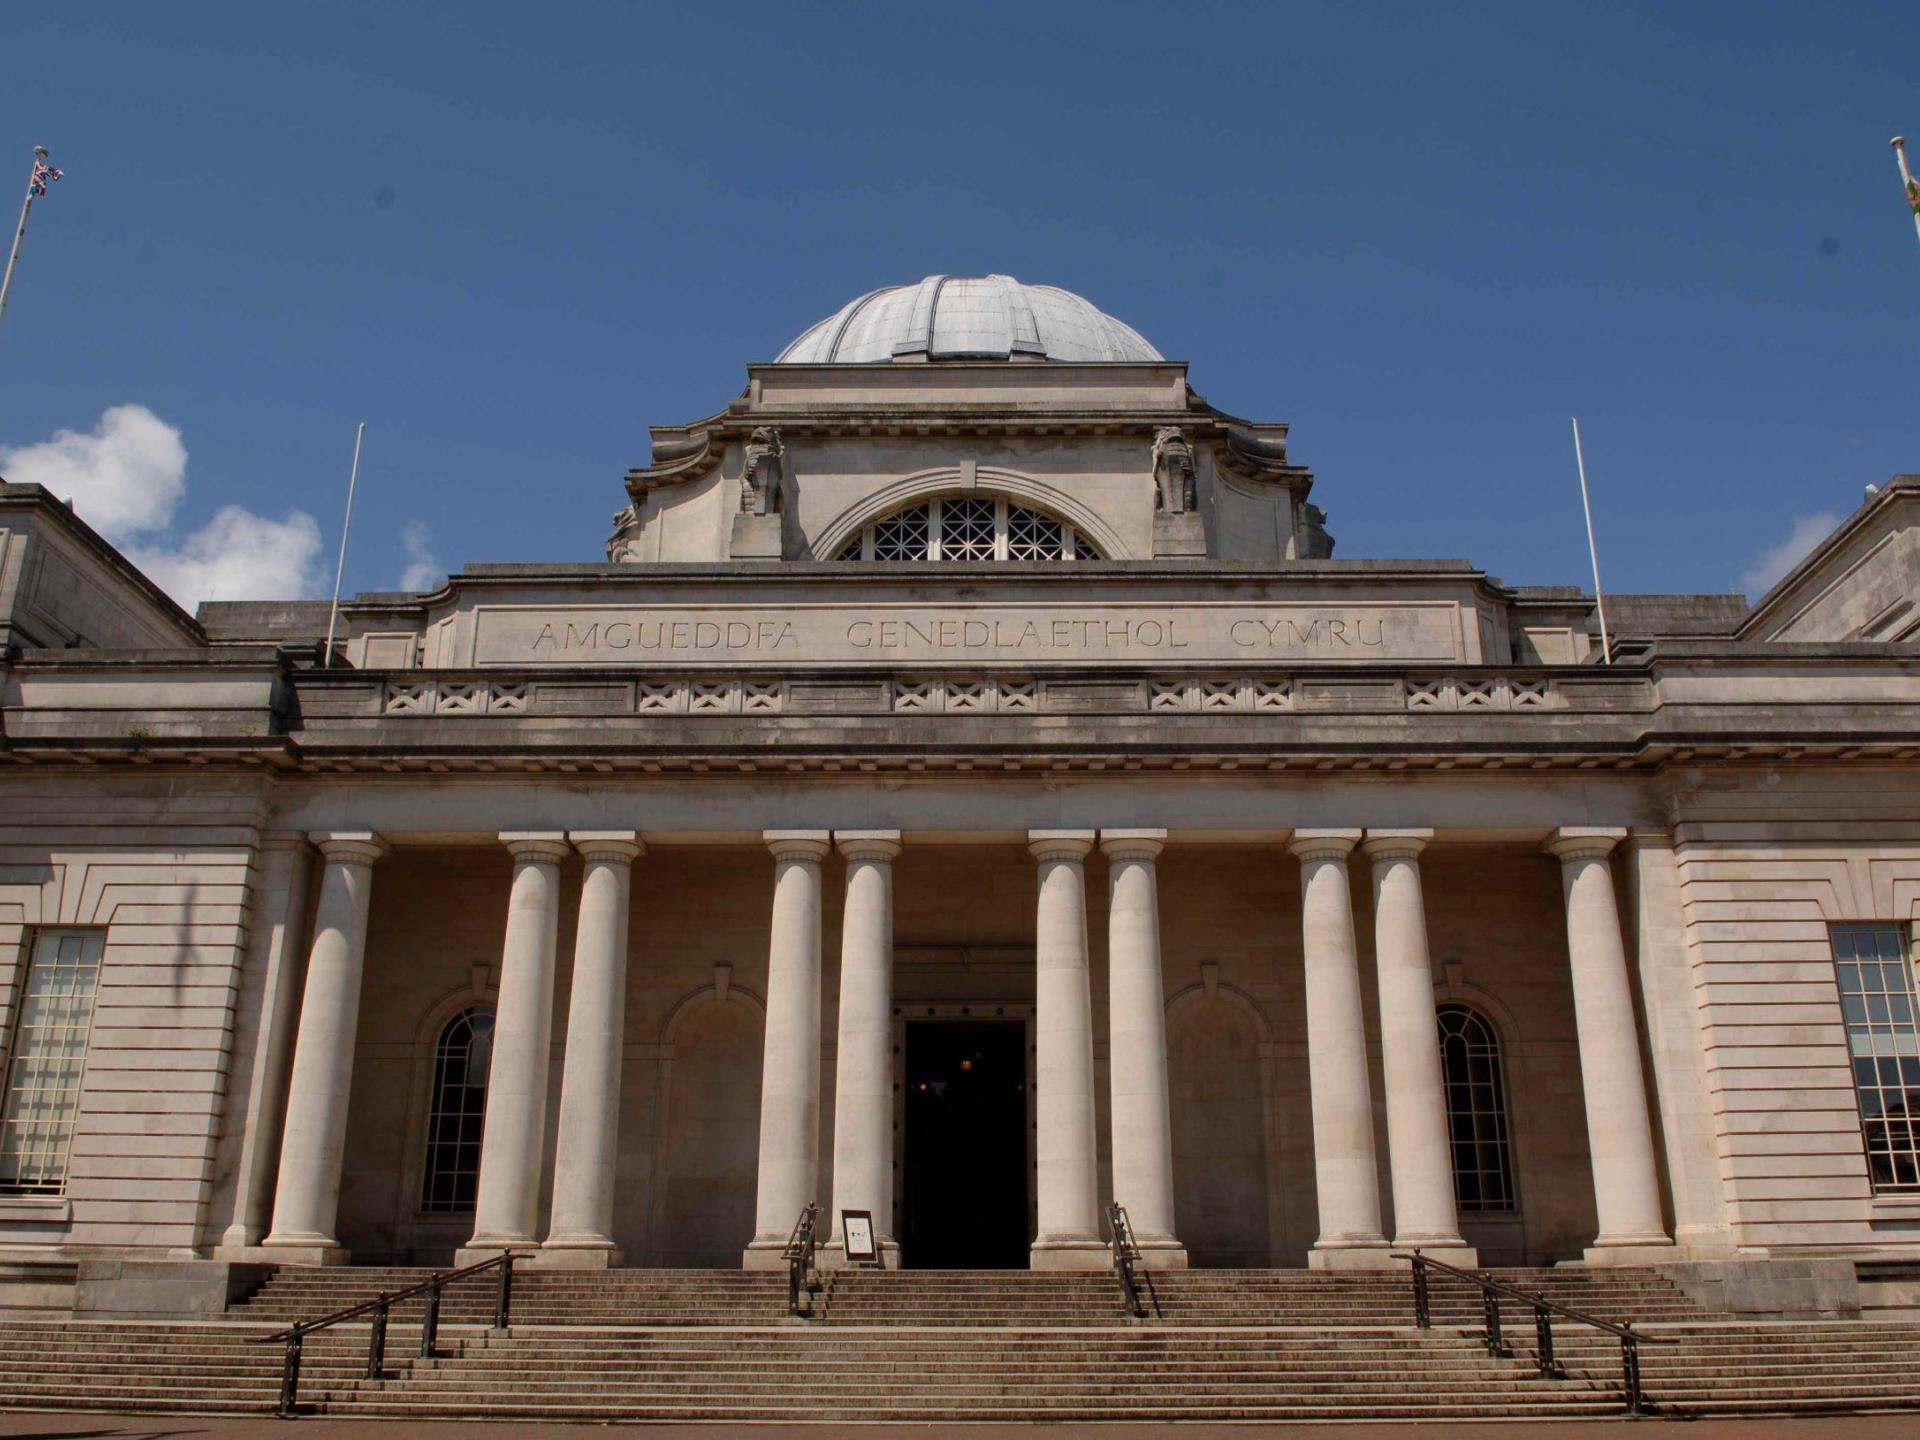 Front of the building